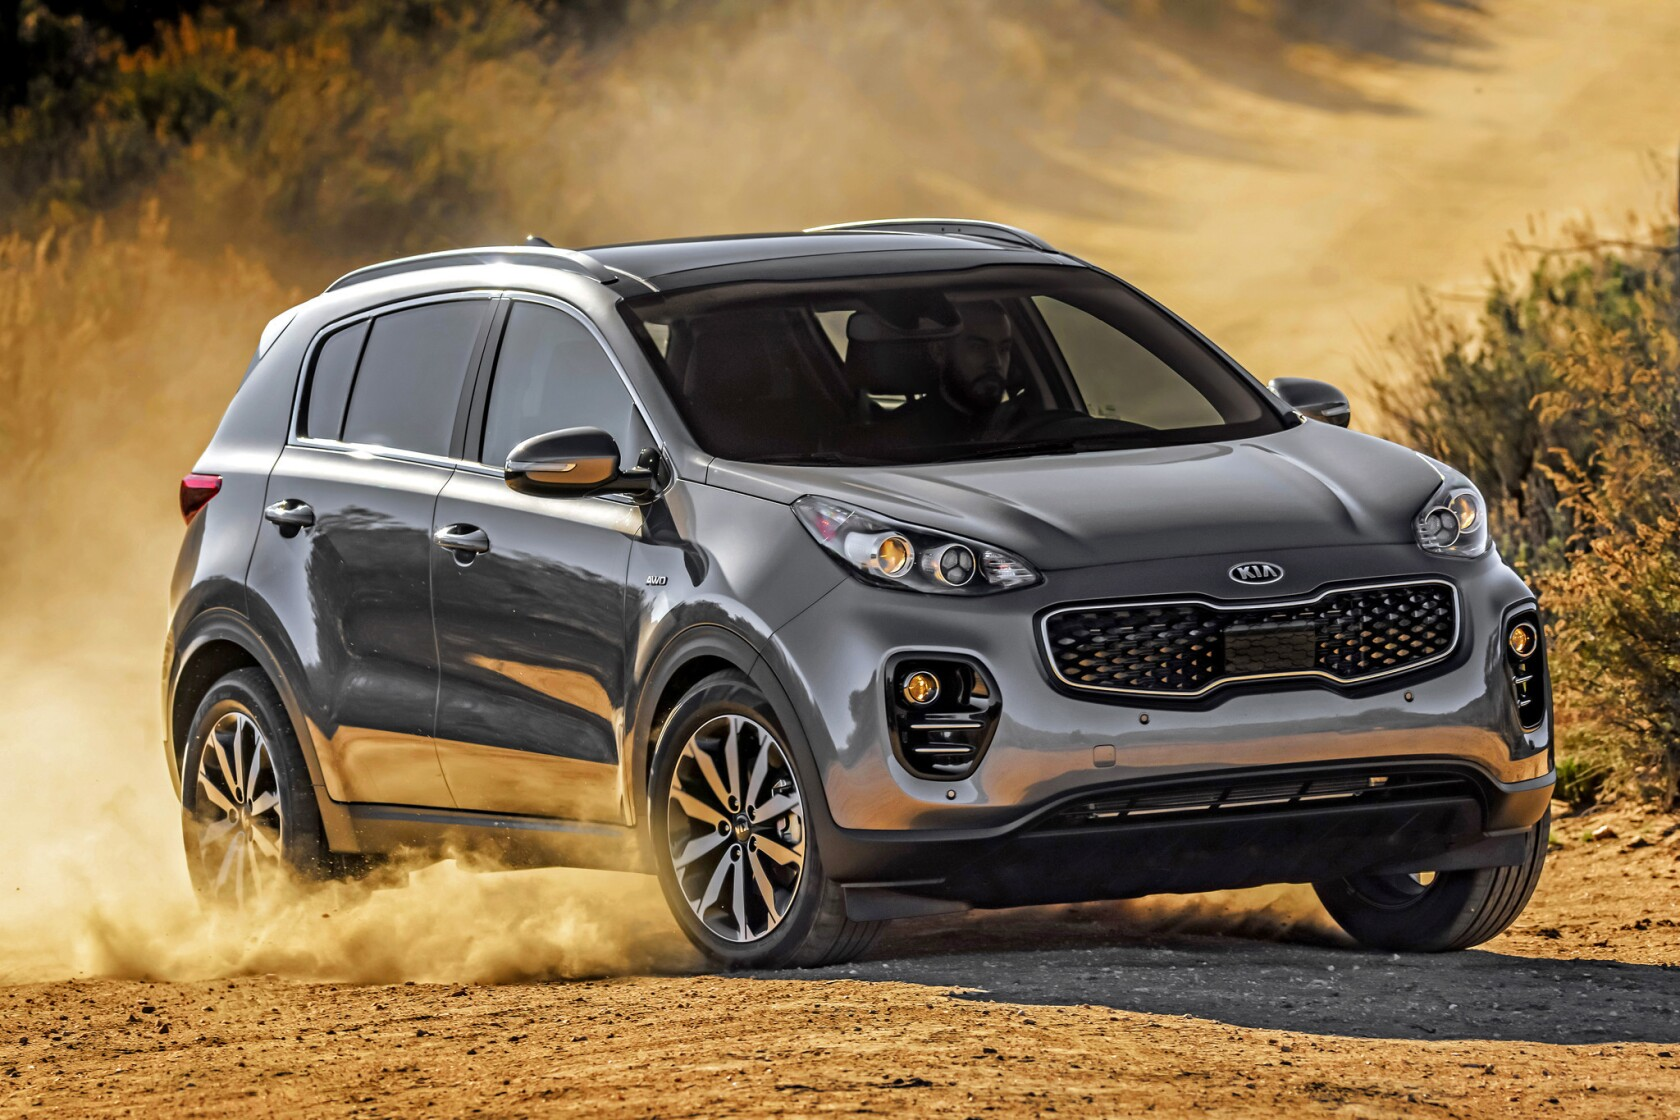 2018 Kia Sportage: Specs, Powertrains, Price >> The Kia Sportage Is A Perky Crossover That S Short On Style